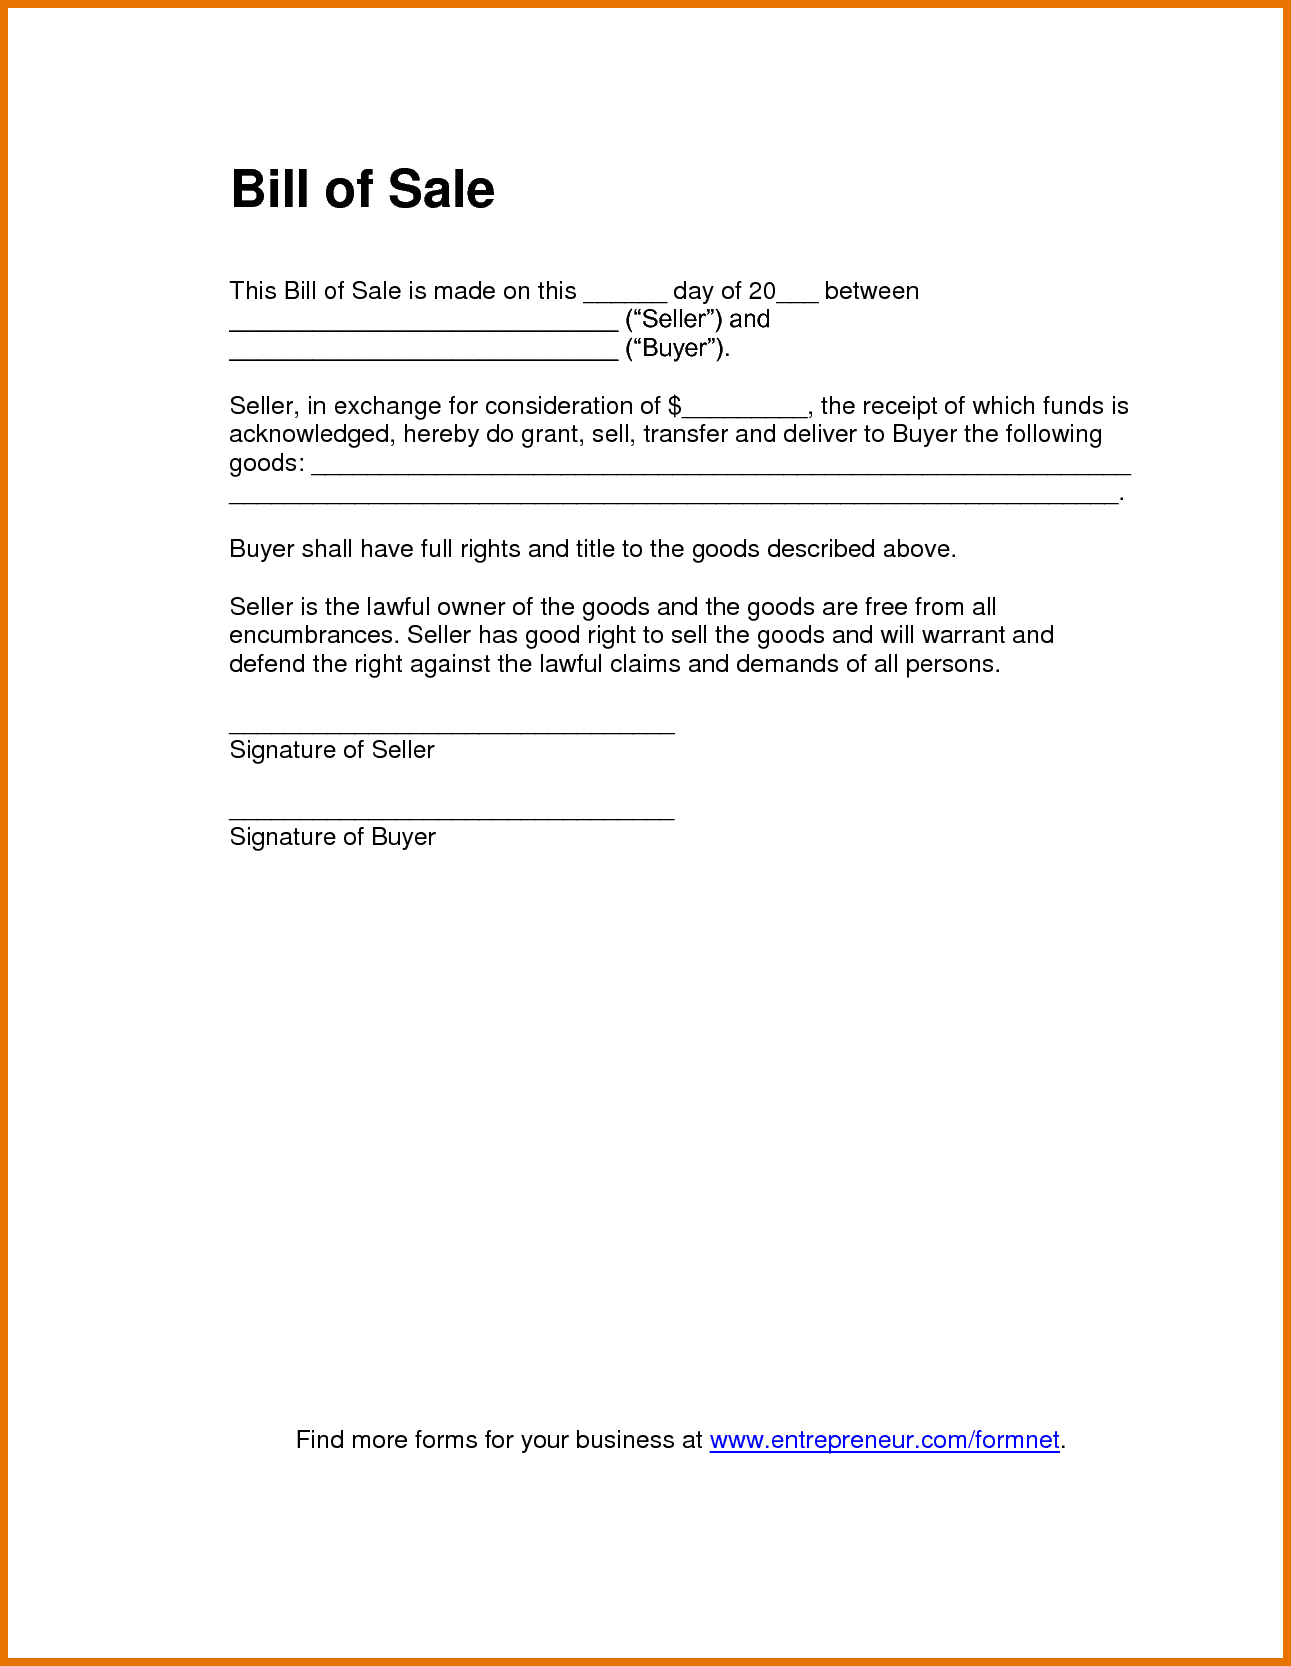 Atv bill of sale template word and atv bill of sale colorado